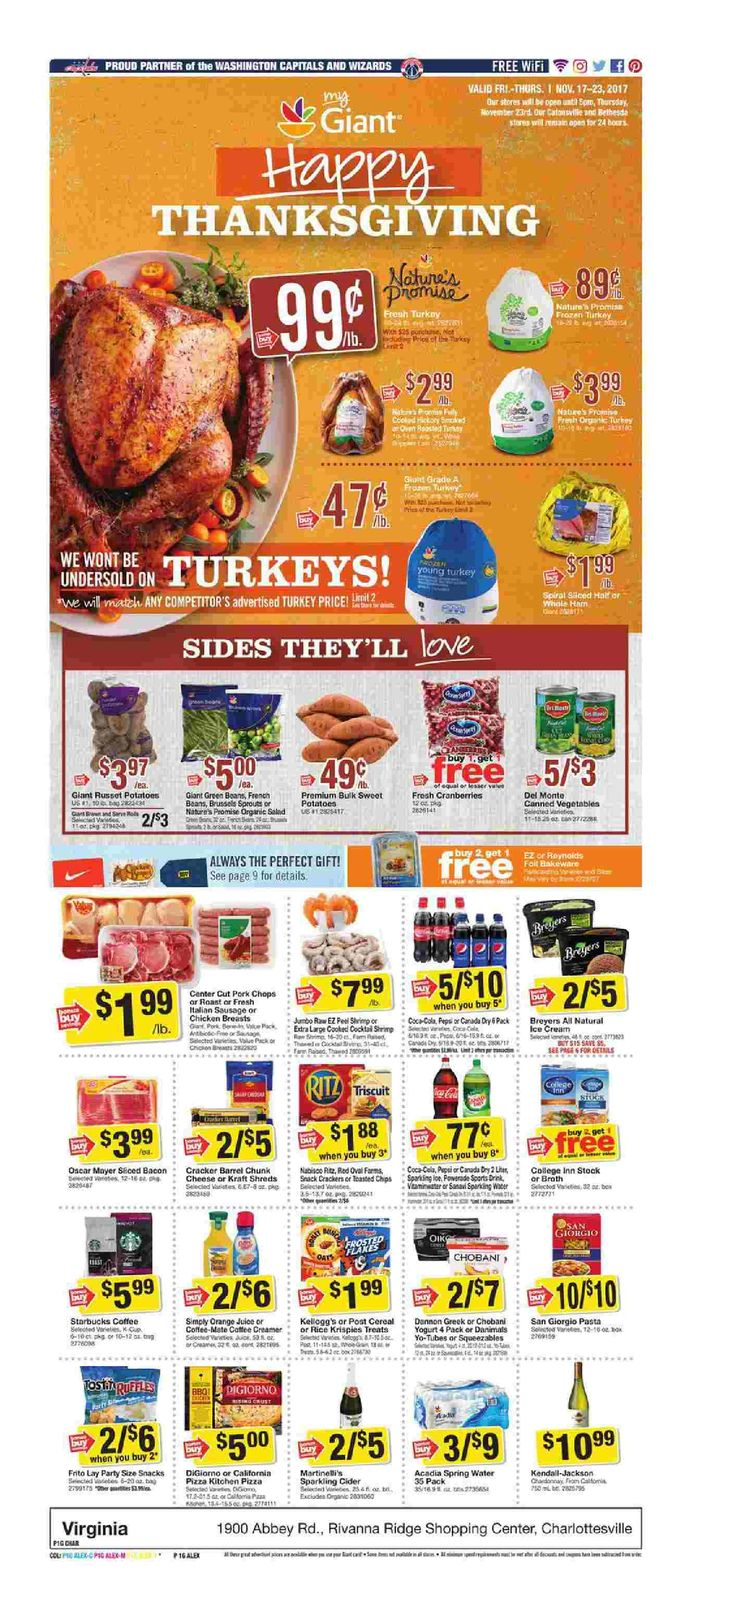 Giant Food Weekly Ad November 17 - 23, 2017 - http://www.olcatalog.com/grocery/giant-food-weekly-ad.html